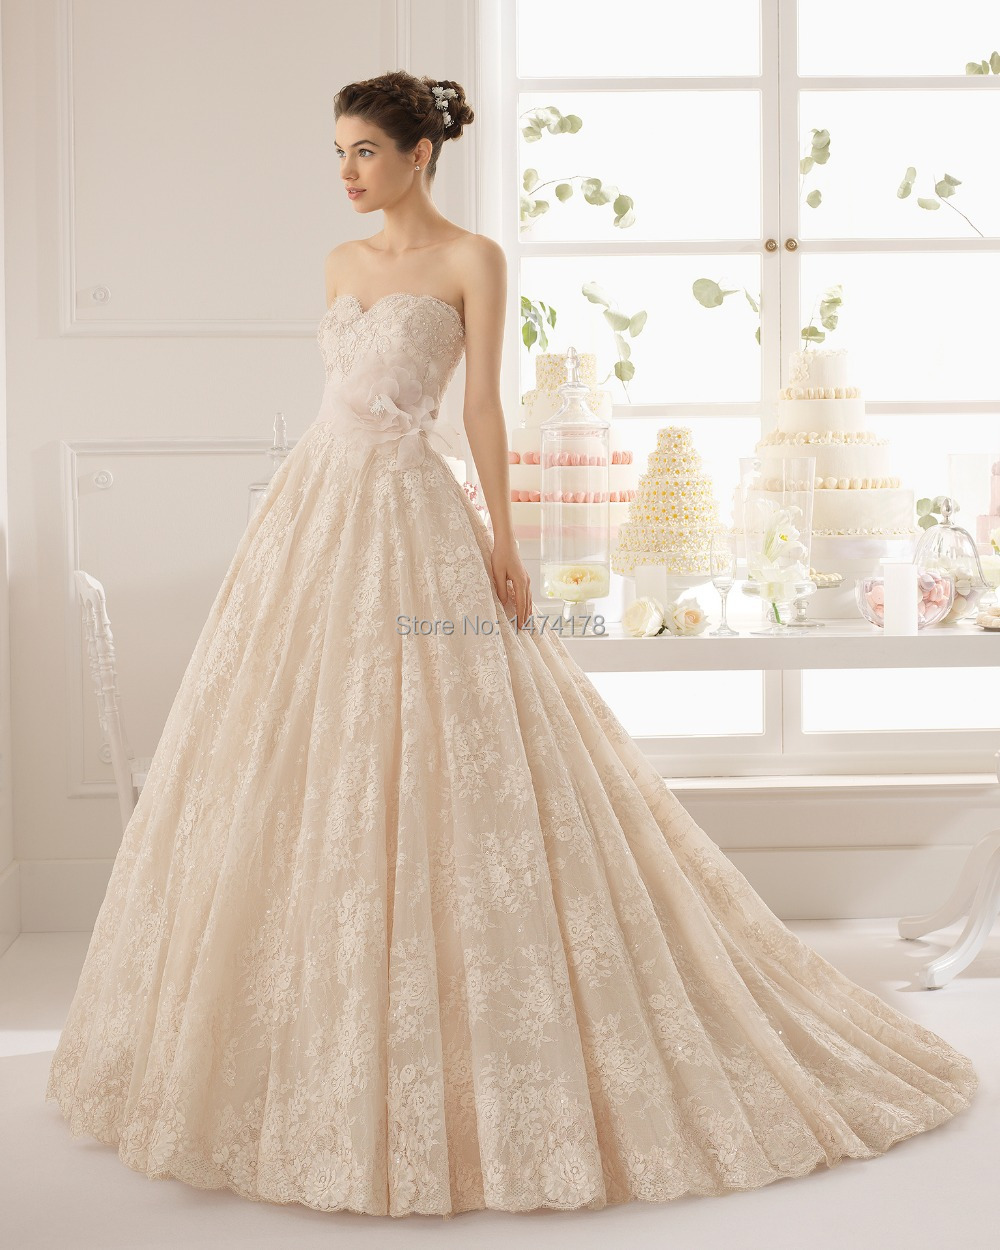 2015 Princess style wedding dress RSE 001 Strapless sweetheart ...